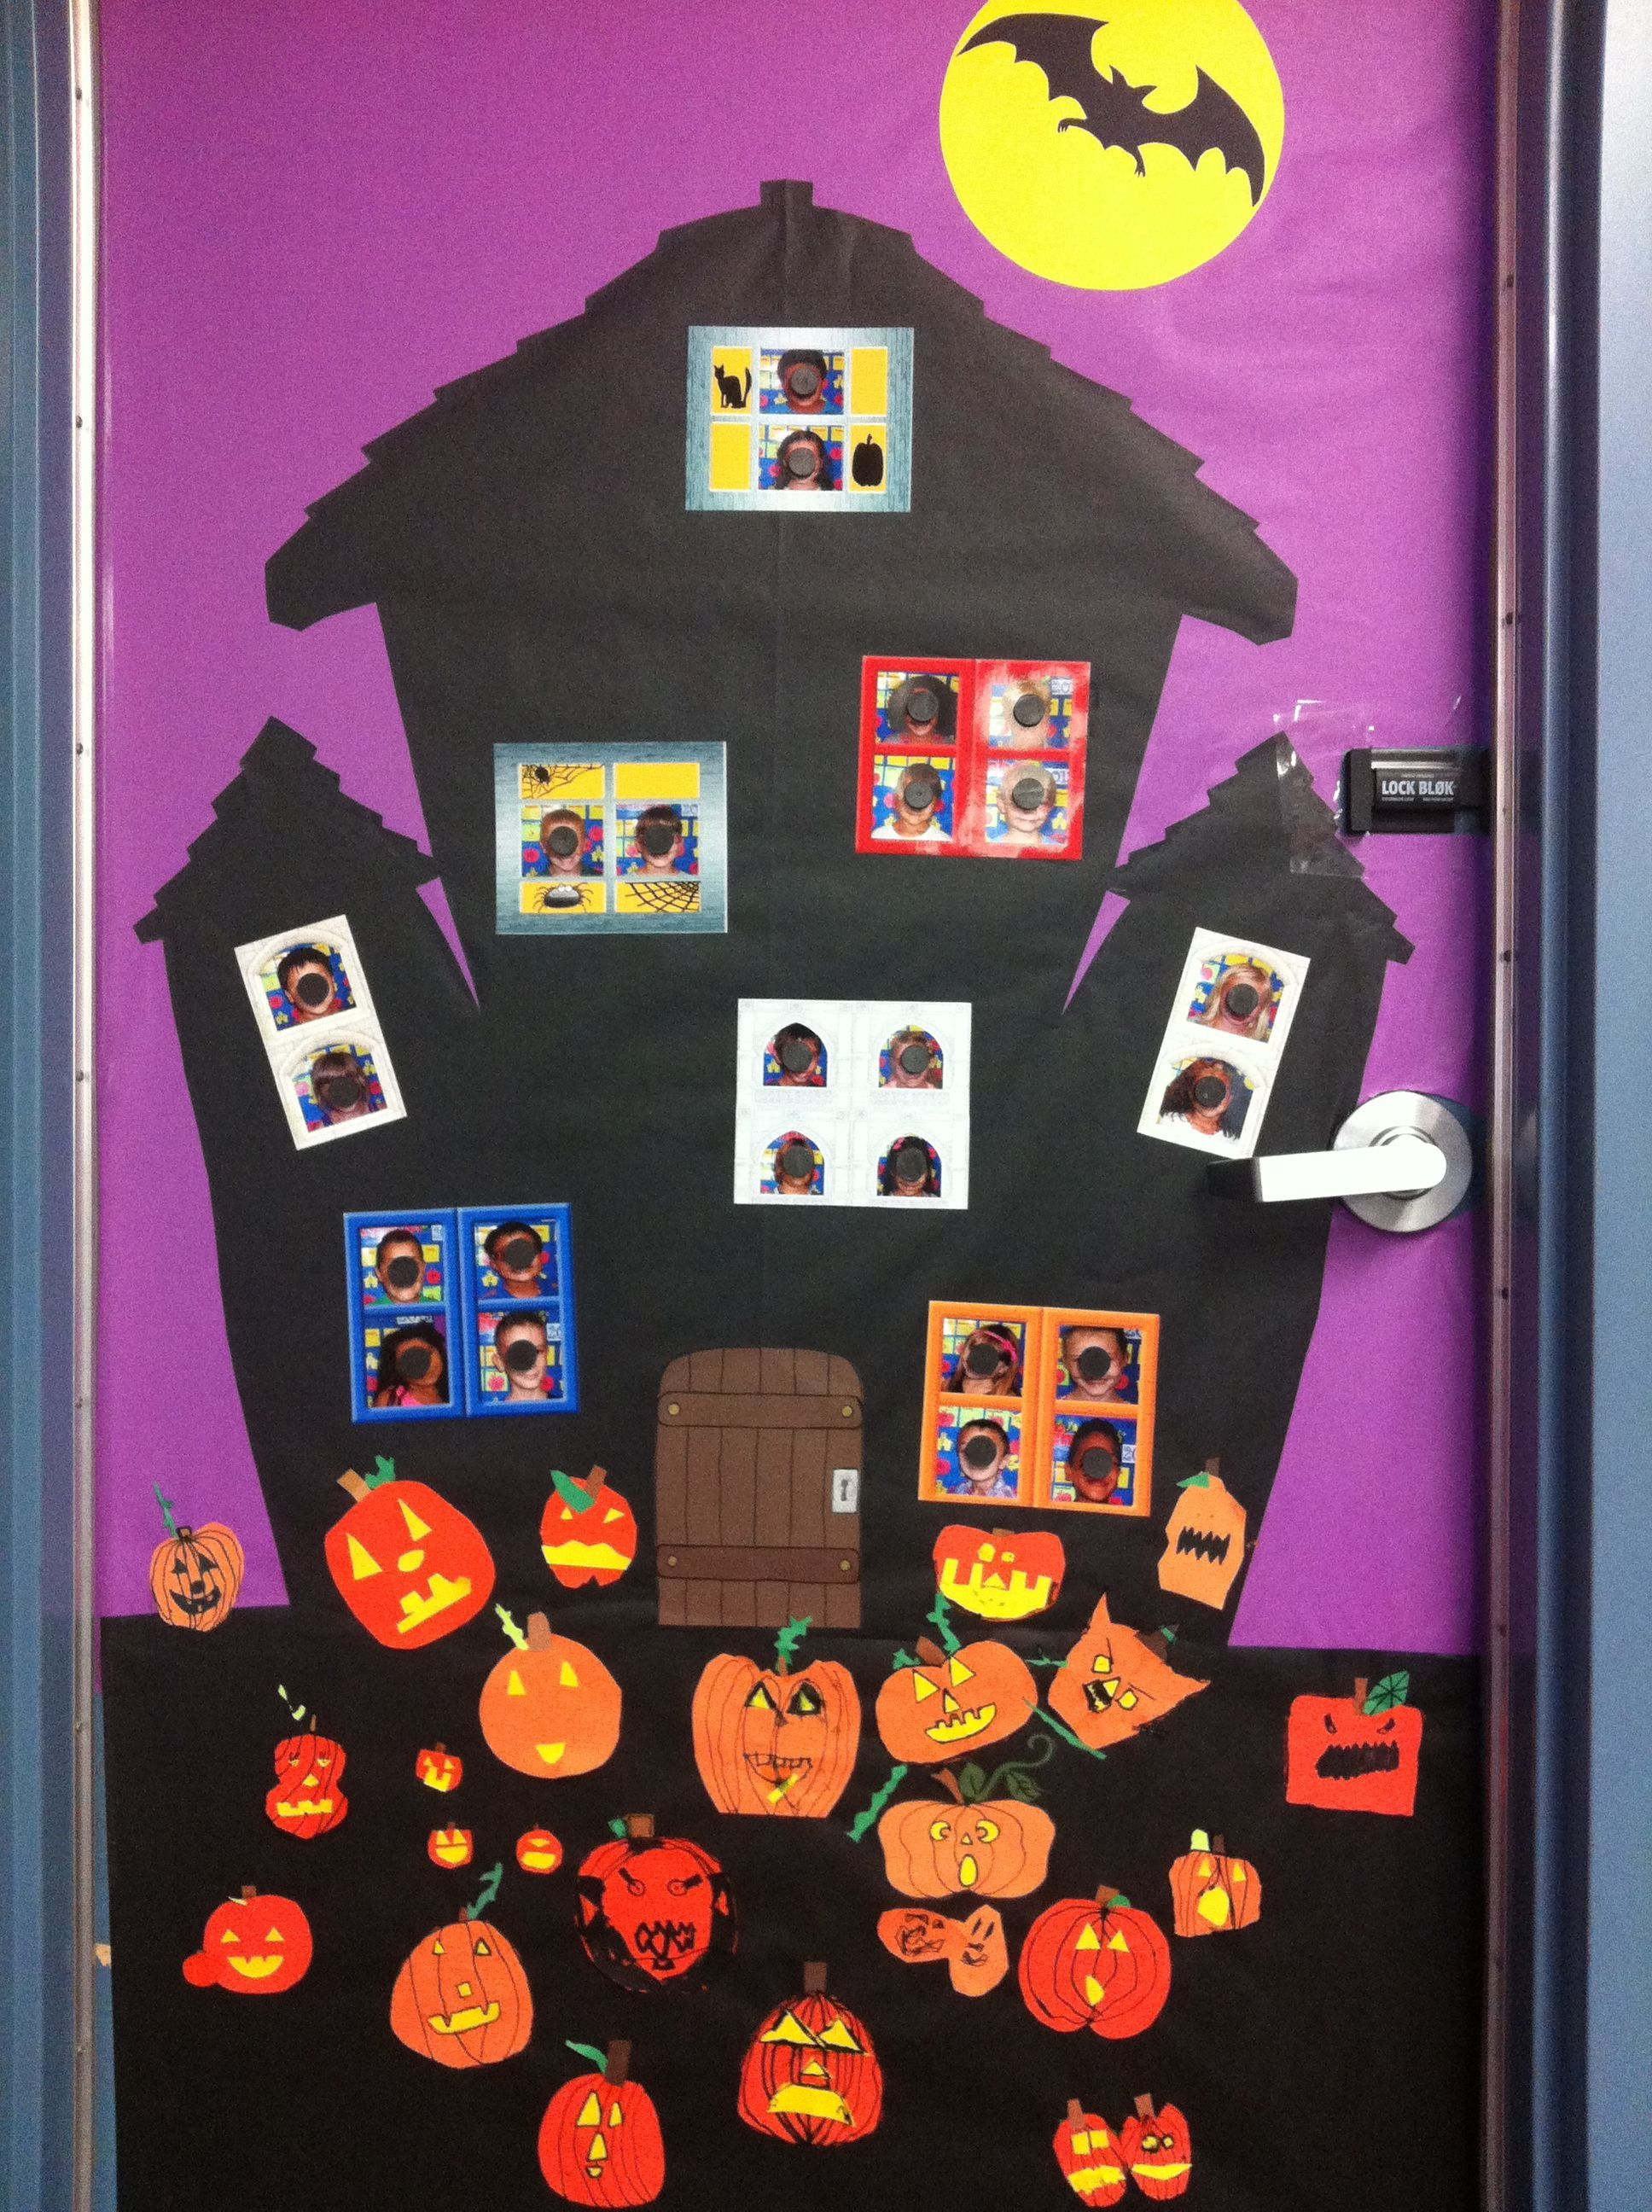 October 2013. I got the haunted house idea from Pinterest. Where else? :)  I found cute window clipart on PrintShop and added their pictures. Then, I had the kids make their own Jack-Os to place in the pumpkin patch. I love it! #pumpkinpatchbulletinboard October 2013. I got the haunted house idea from Pinterest. Where else? :)  I found cute window clipart on PrintShop and added their pictures. Then, I had the kids make their own Jack-Os to place in the pumpkin patch. I love it! #pumpkinpatchbulletinboard